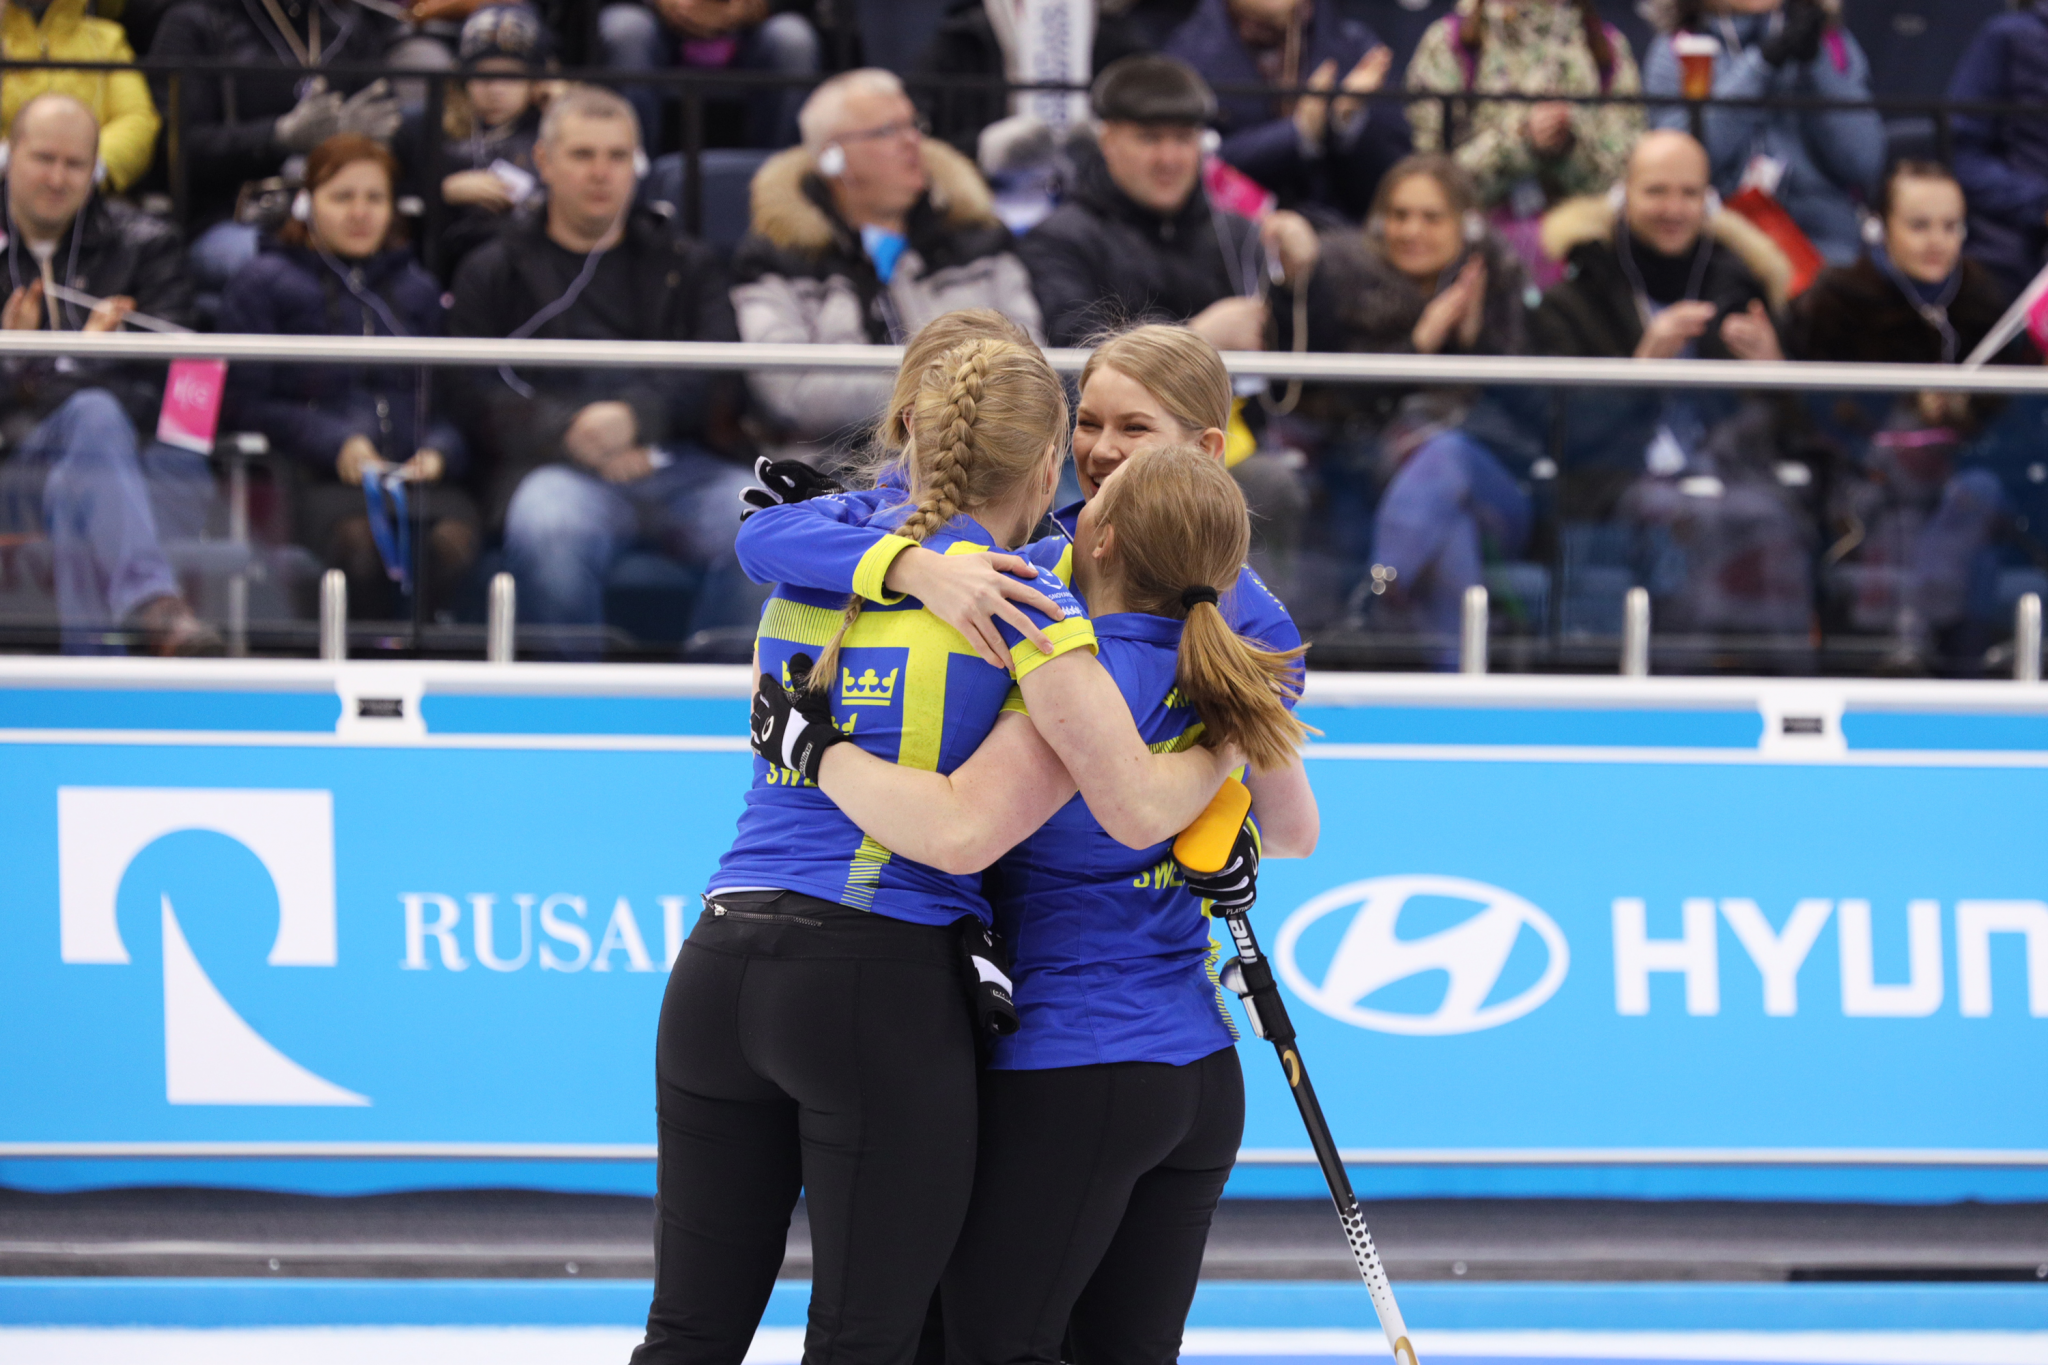 Norway and Sweden crowned curling champions as bandy brings up Russian century of medals at Winter Universiade